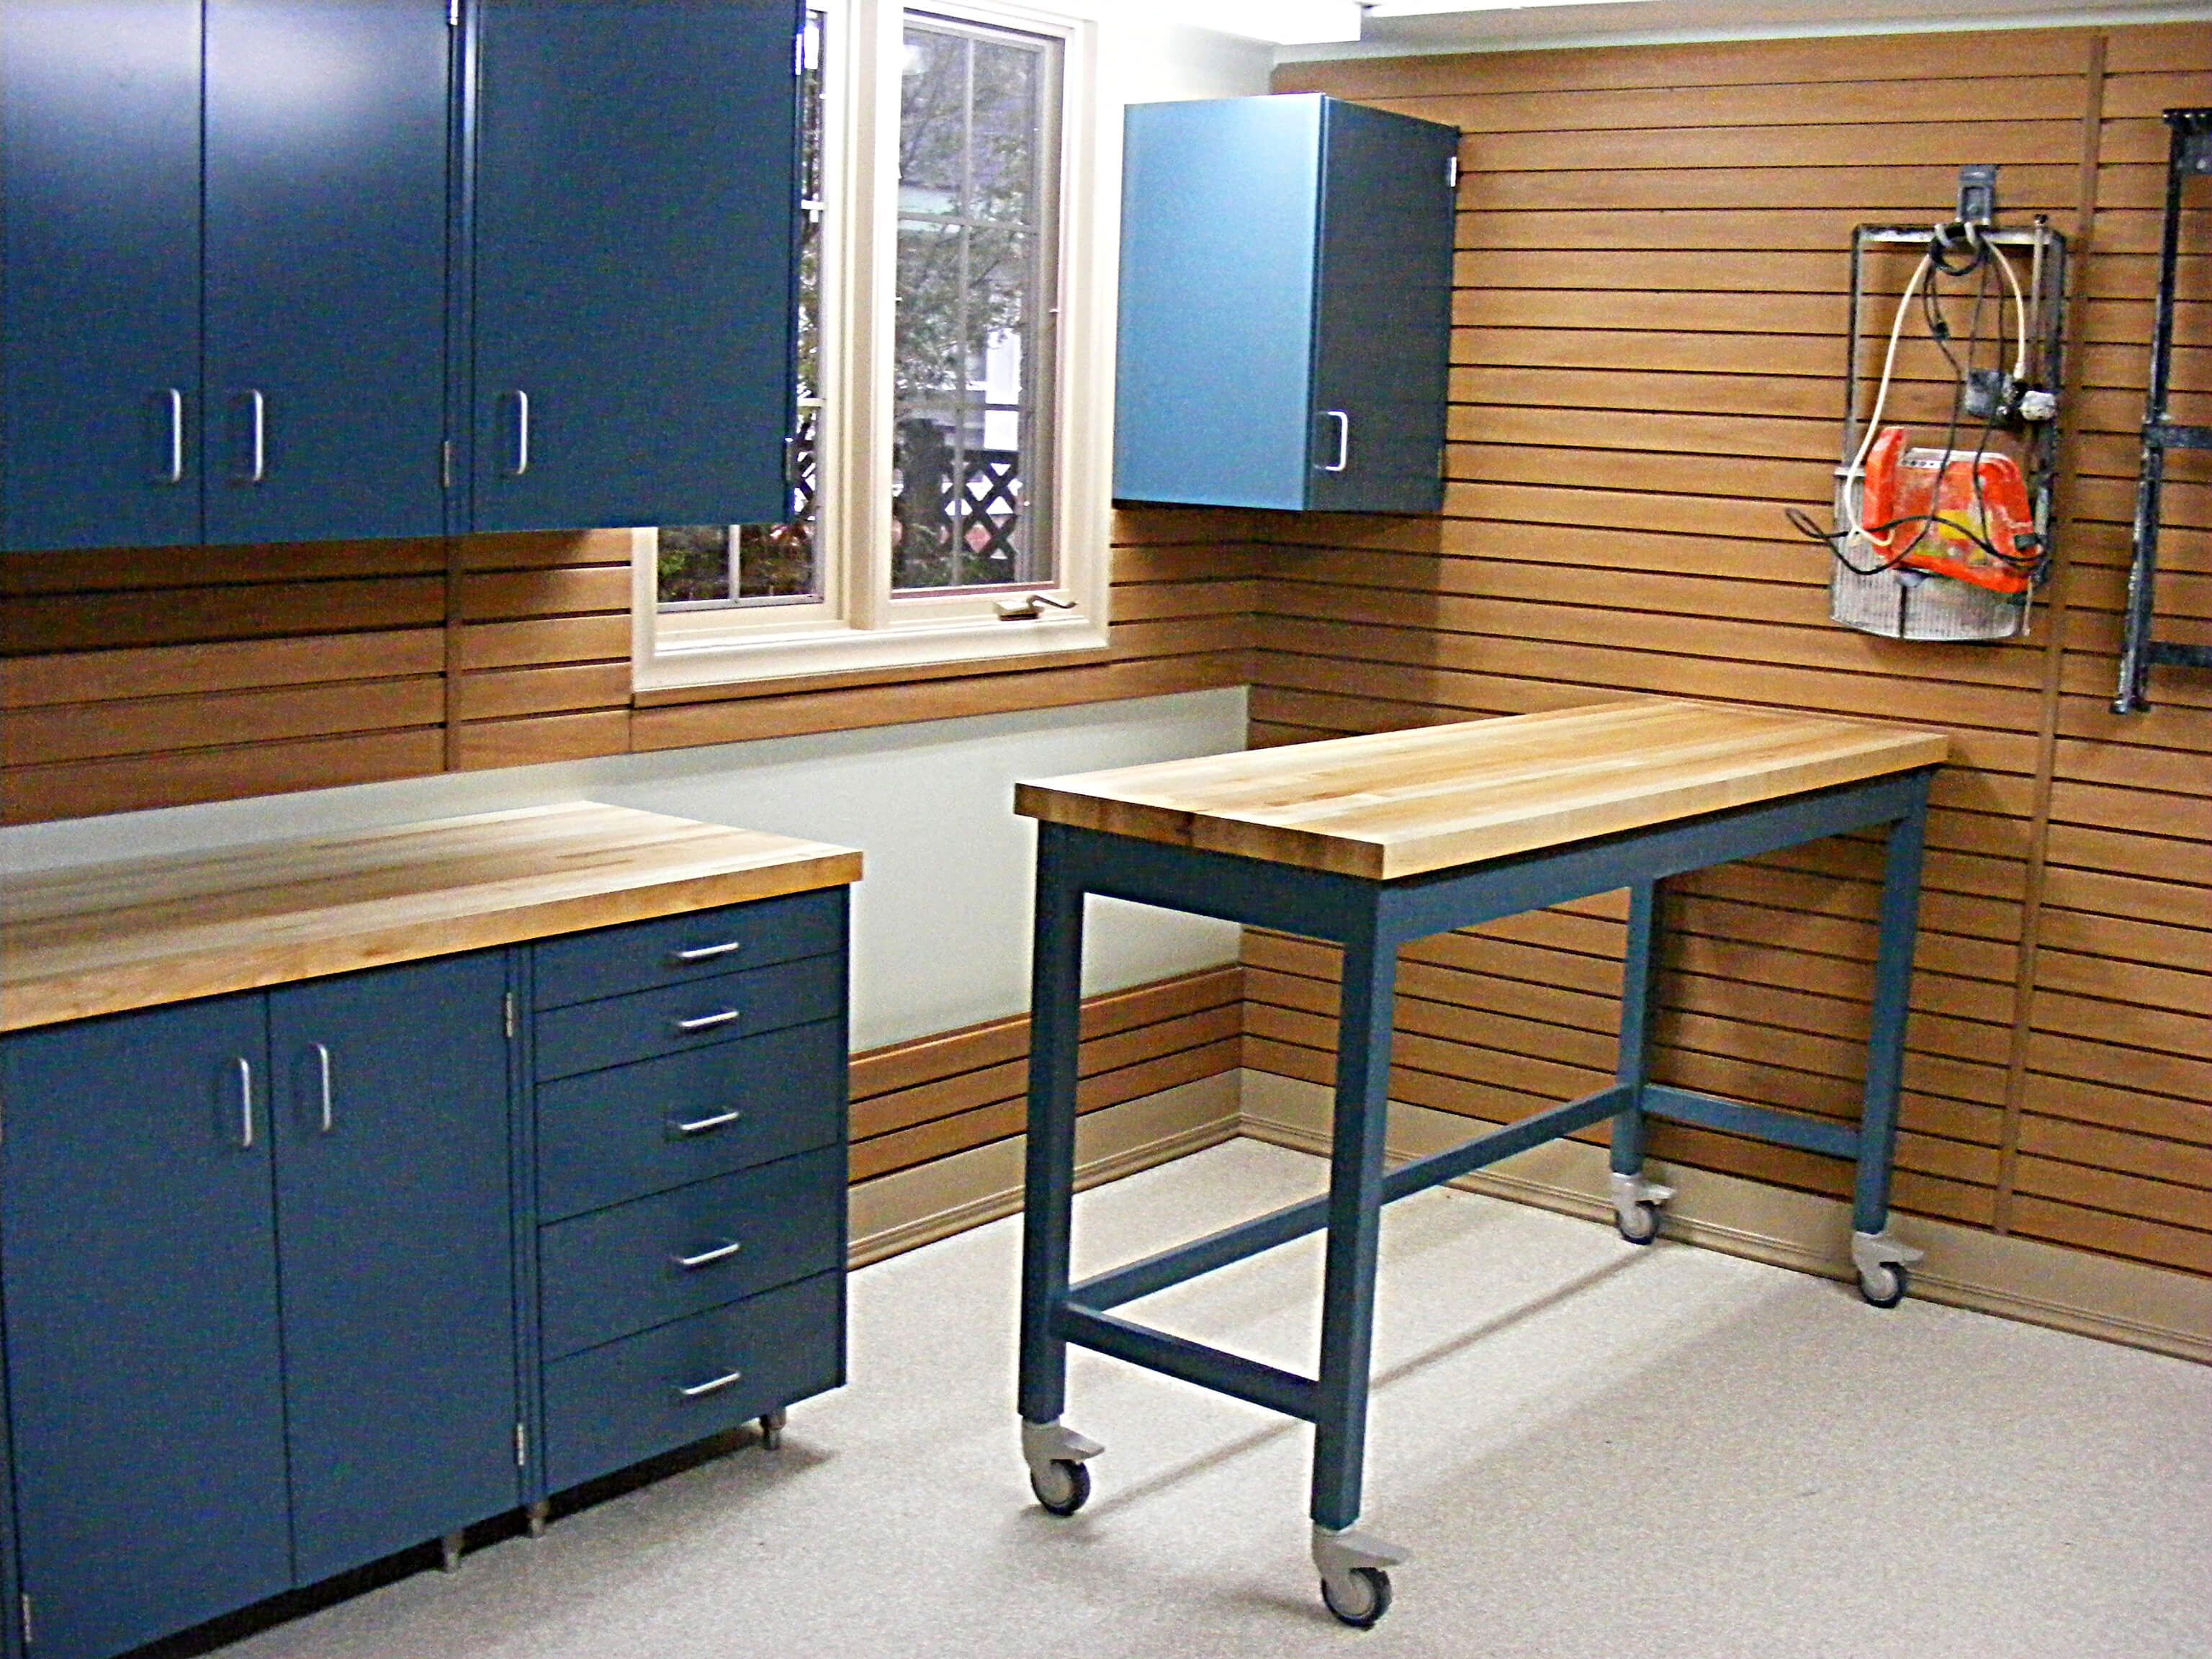 Garage Workbenches And Cabinets Garage Wall Cabinets Garage Storage Cabinets Blue Garage Cabinets